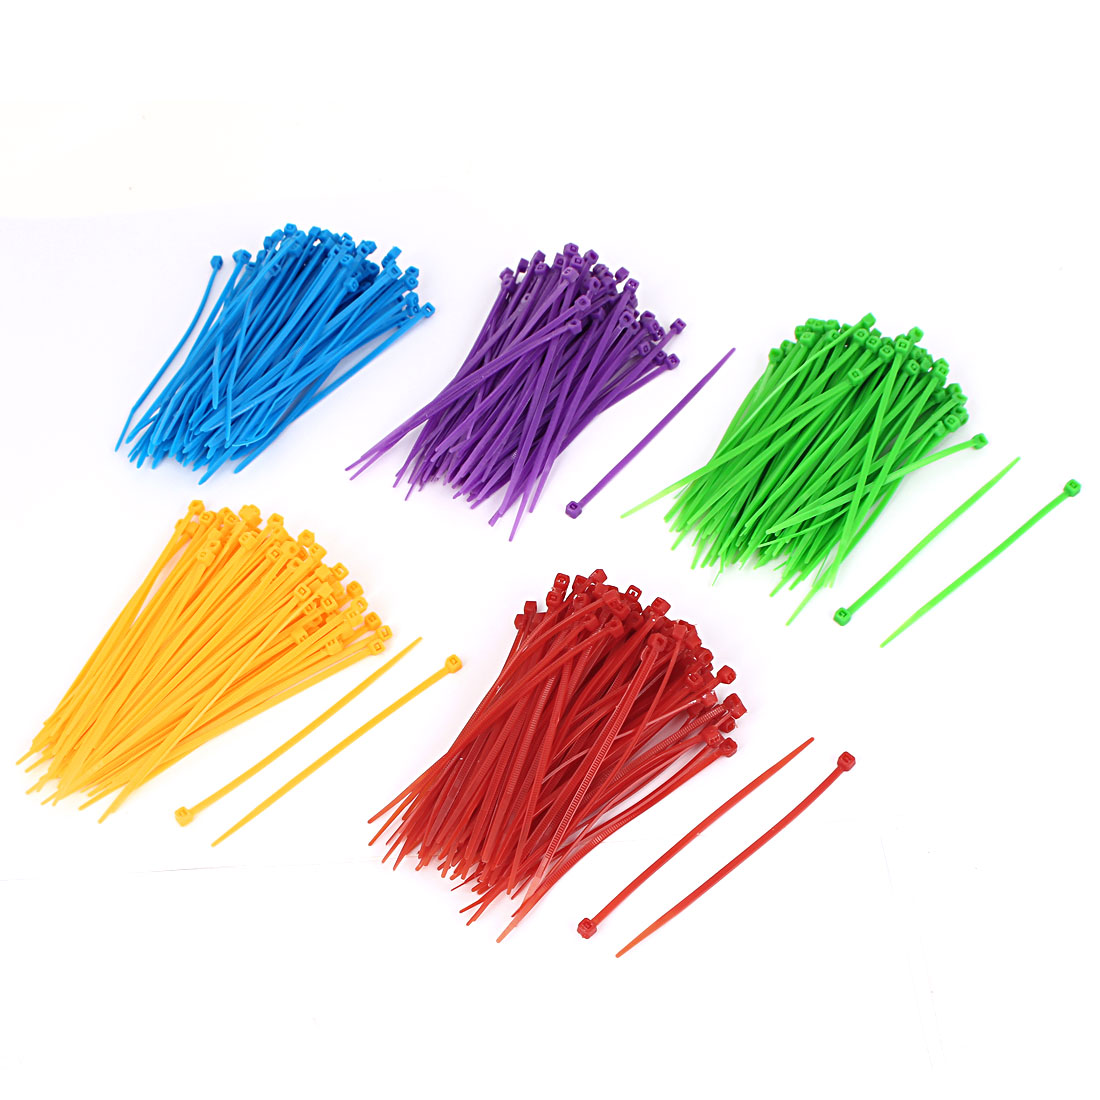 3mm x 100mm Network Cable Cord Wire Colourful Nylon Zip Ties 500 Pcs